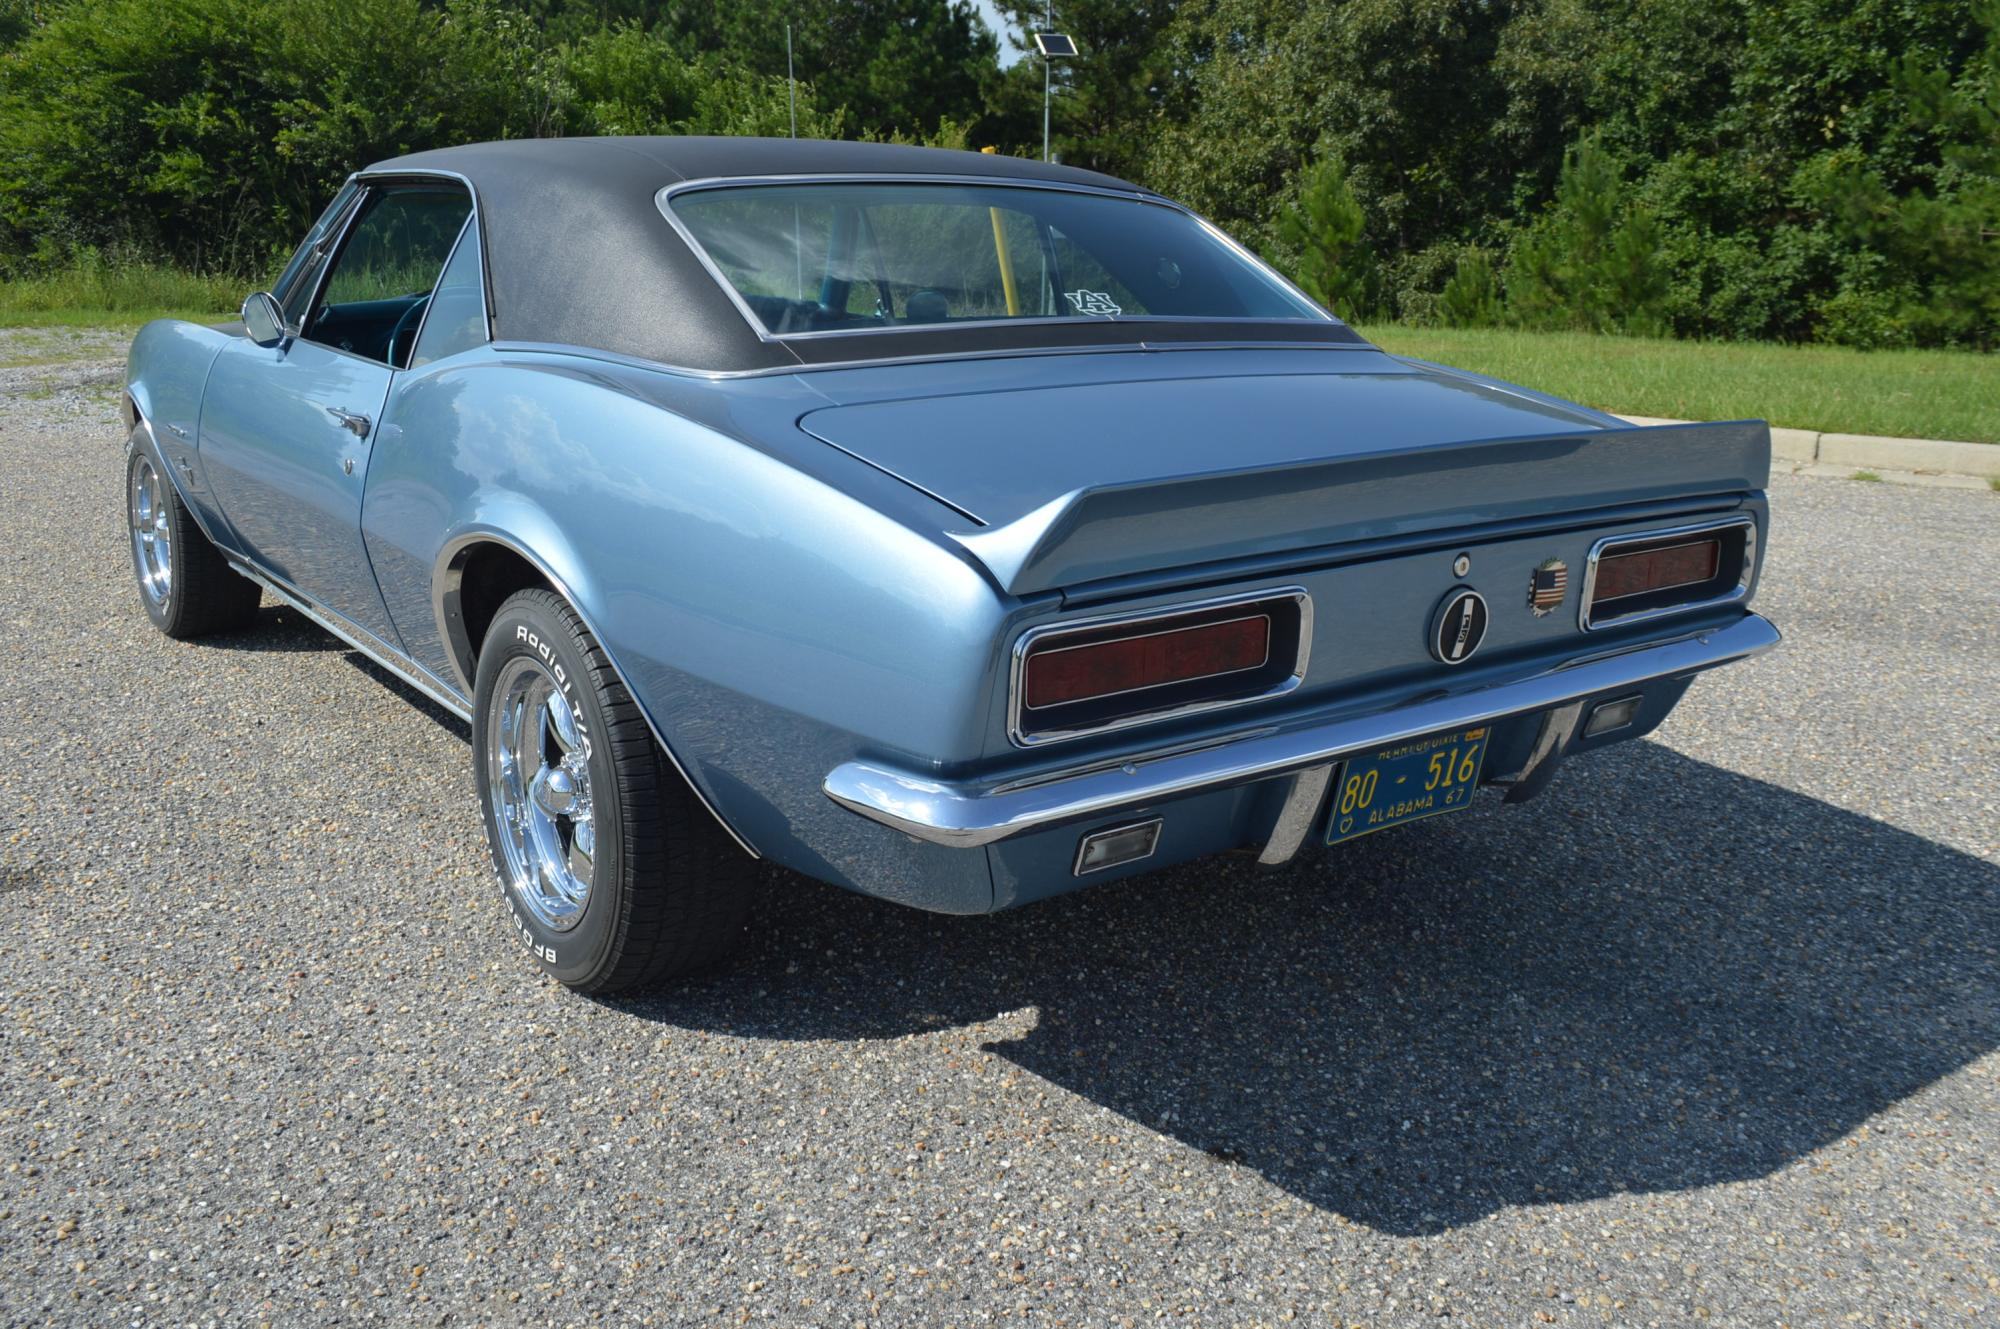 1967_Rs_blue_Camaro_005.JPG